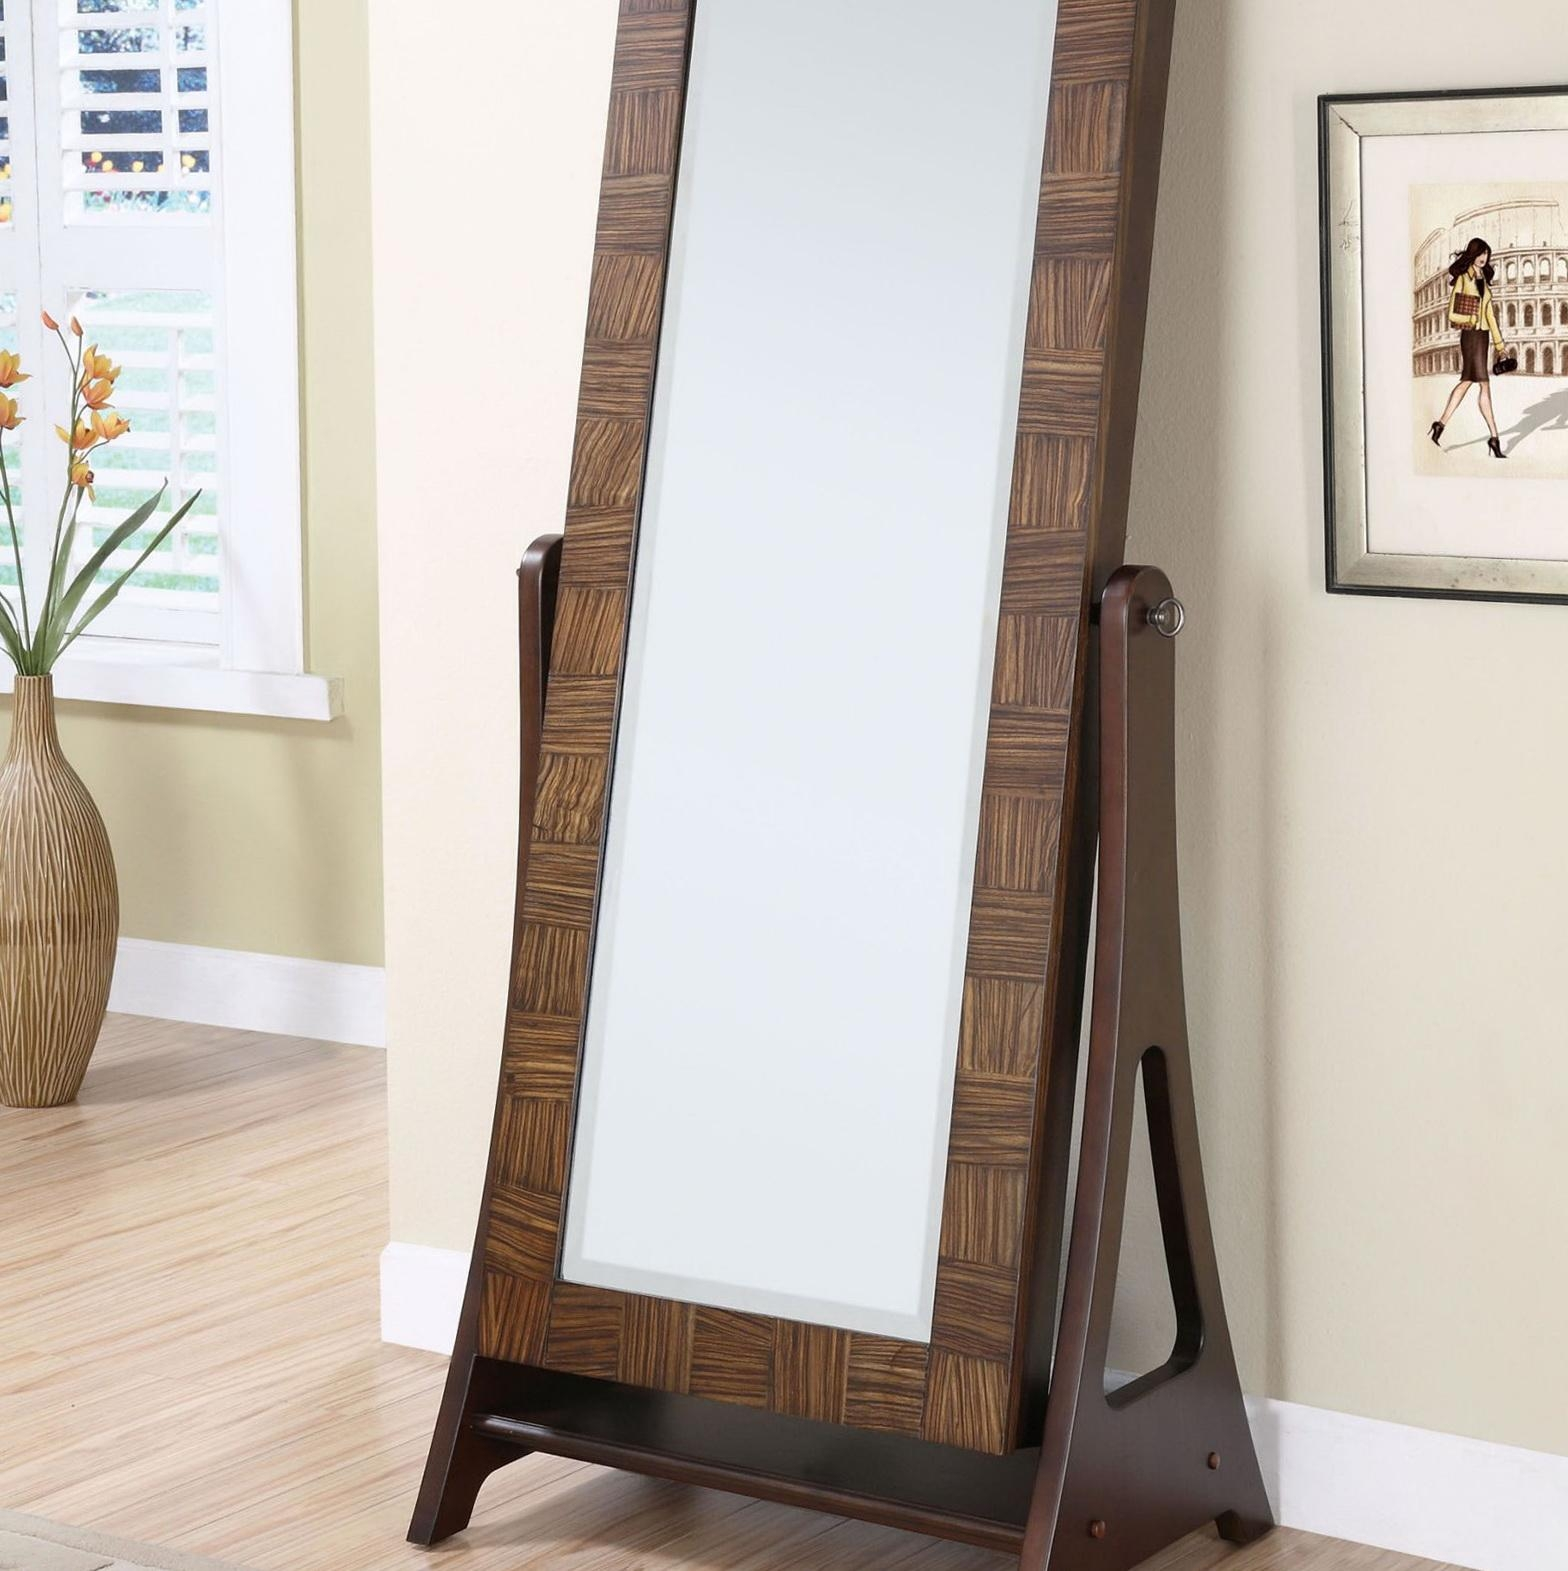 Furniture: Floor Standing Jewelry Armoire Mirror On Wooden Floor Inside Cream Floor Standing Mirror (Image 13 of 20)